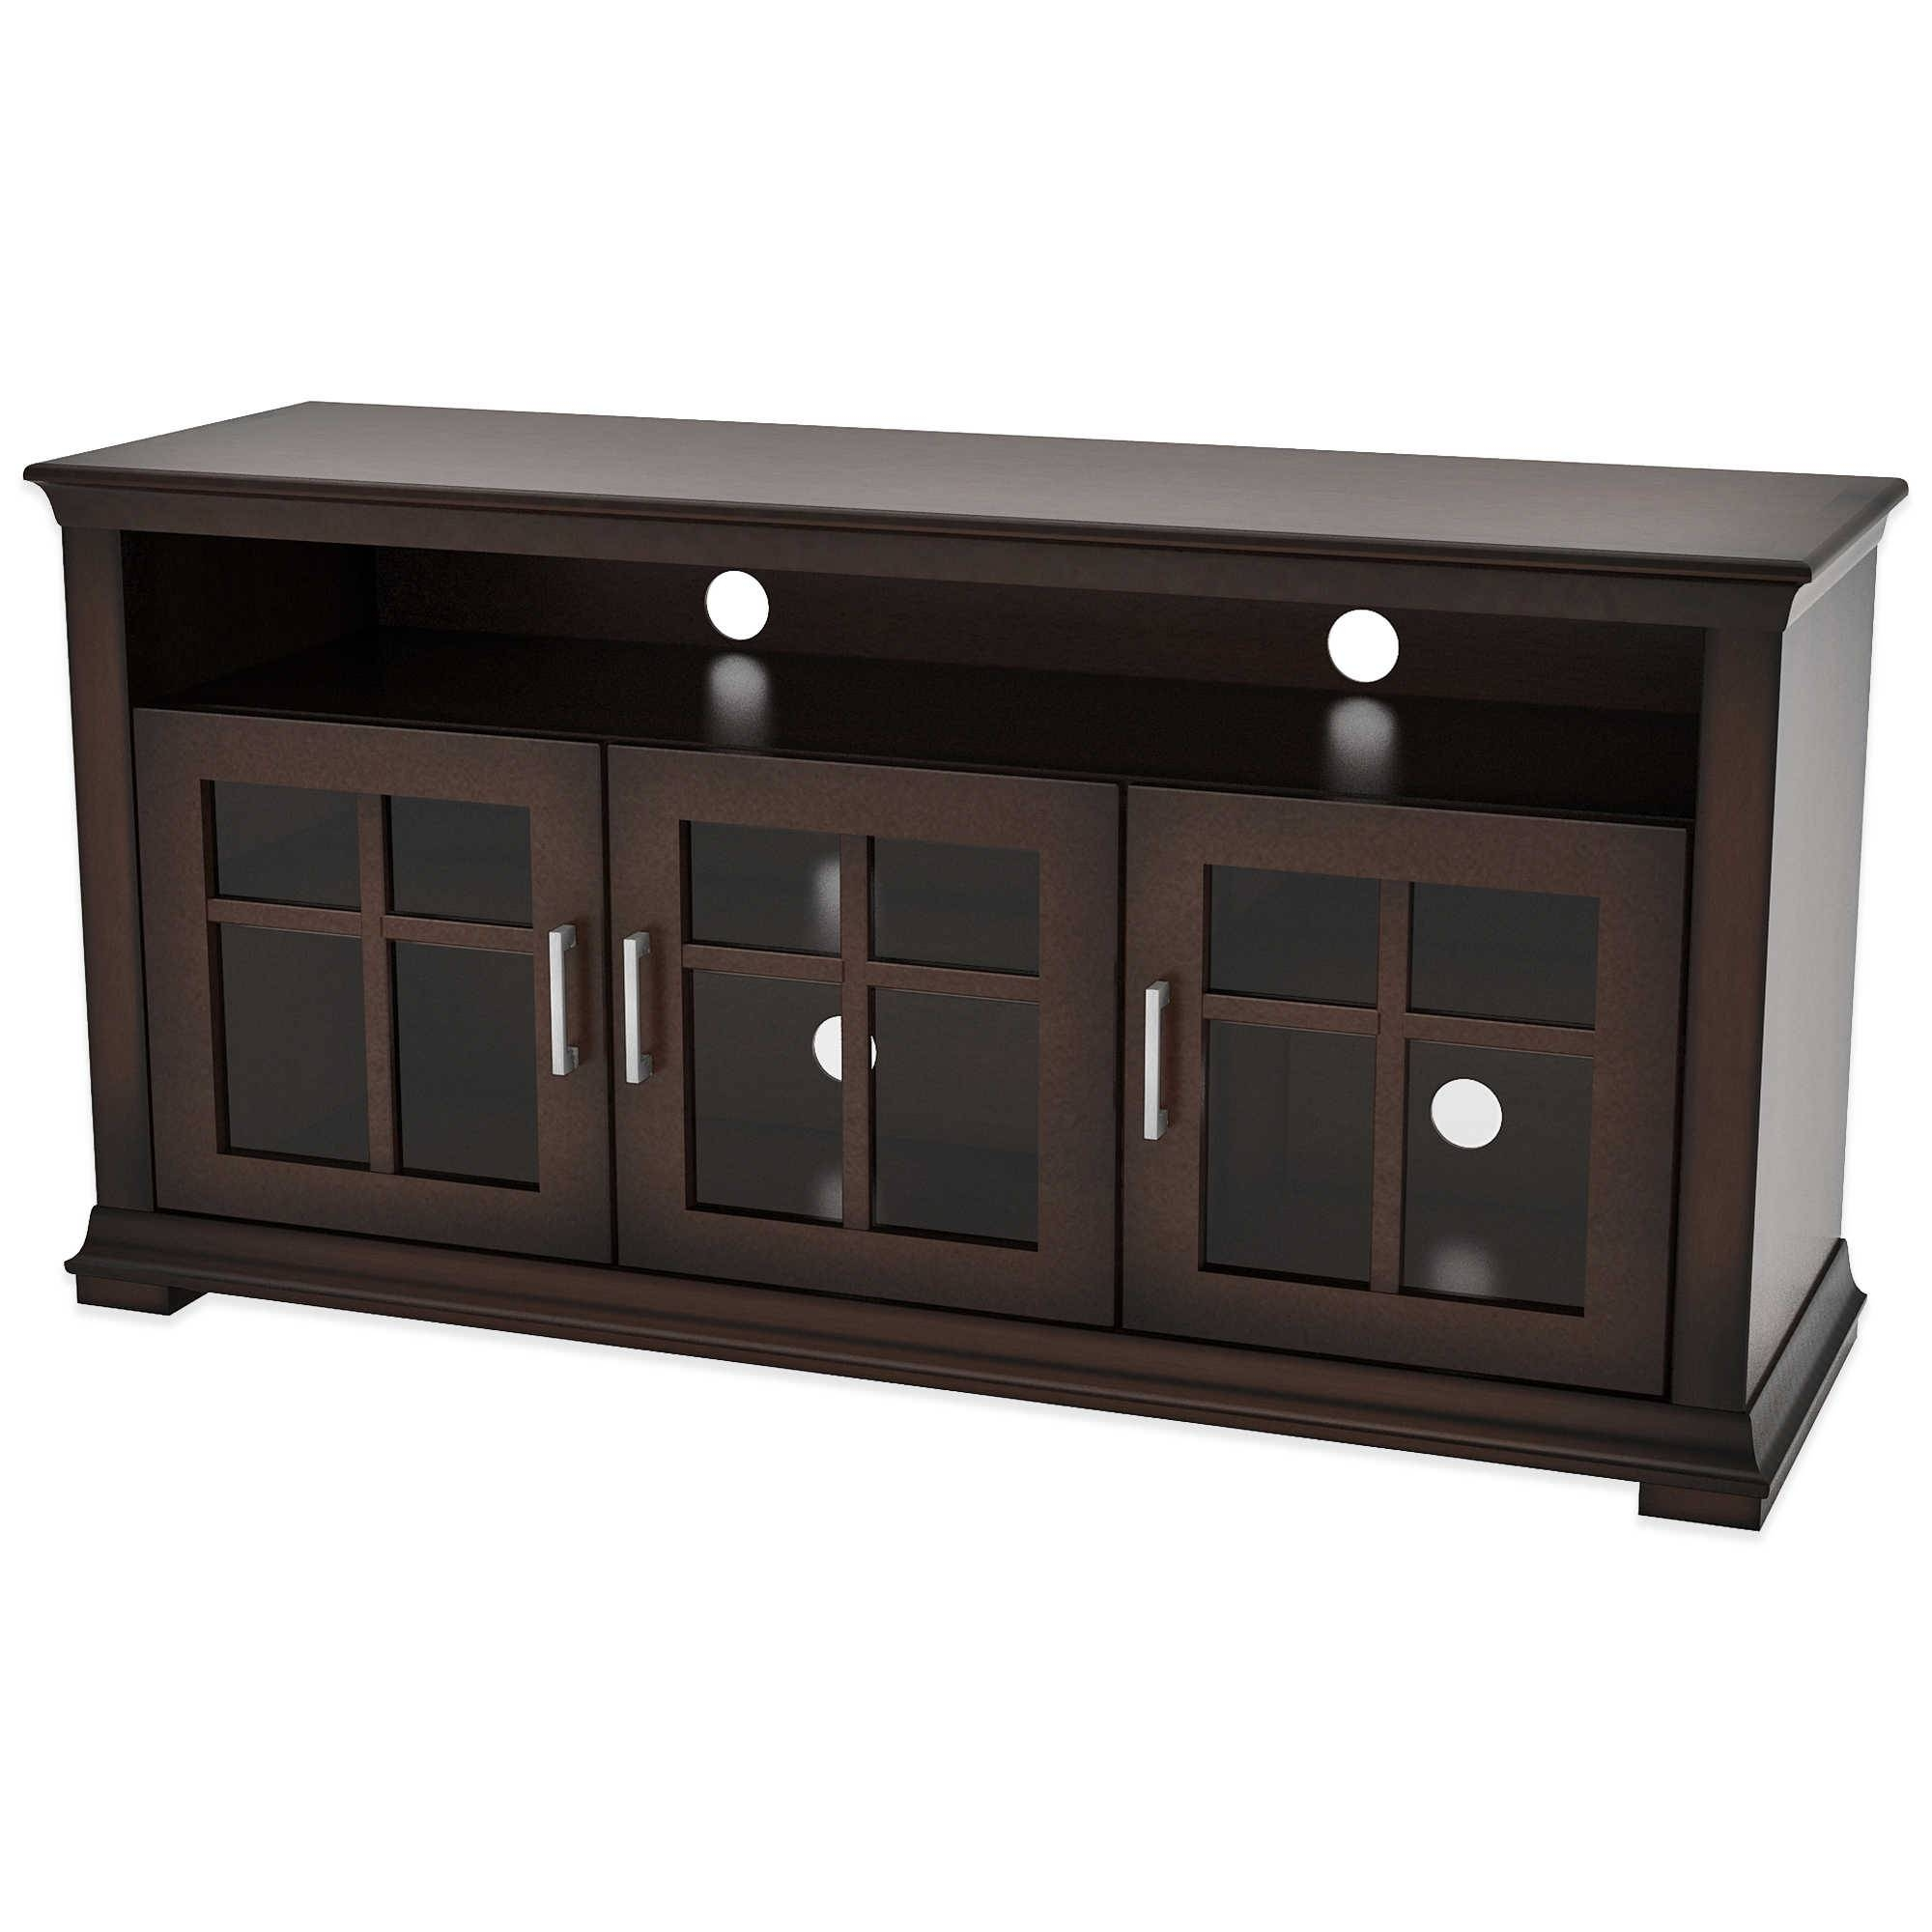 Short Espresso Wood Tv Stand With Triple Glass Doors And Open intended for Dark Wood Tv Stands (Image 13 of 15)